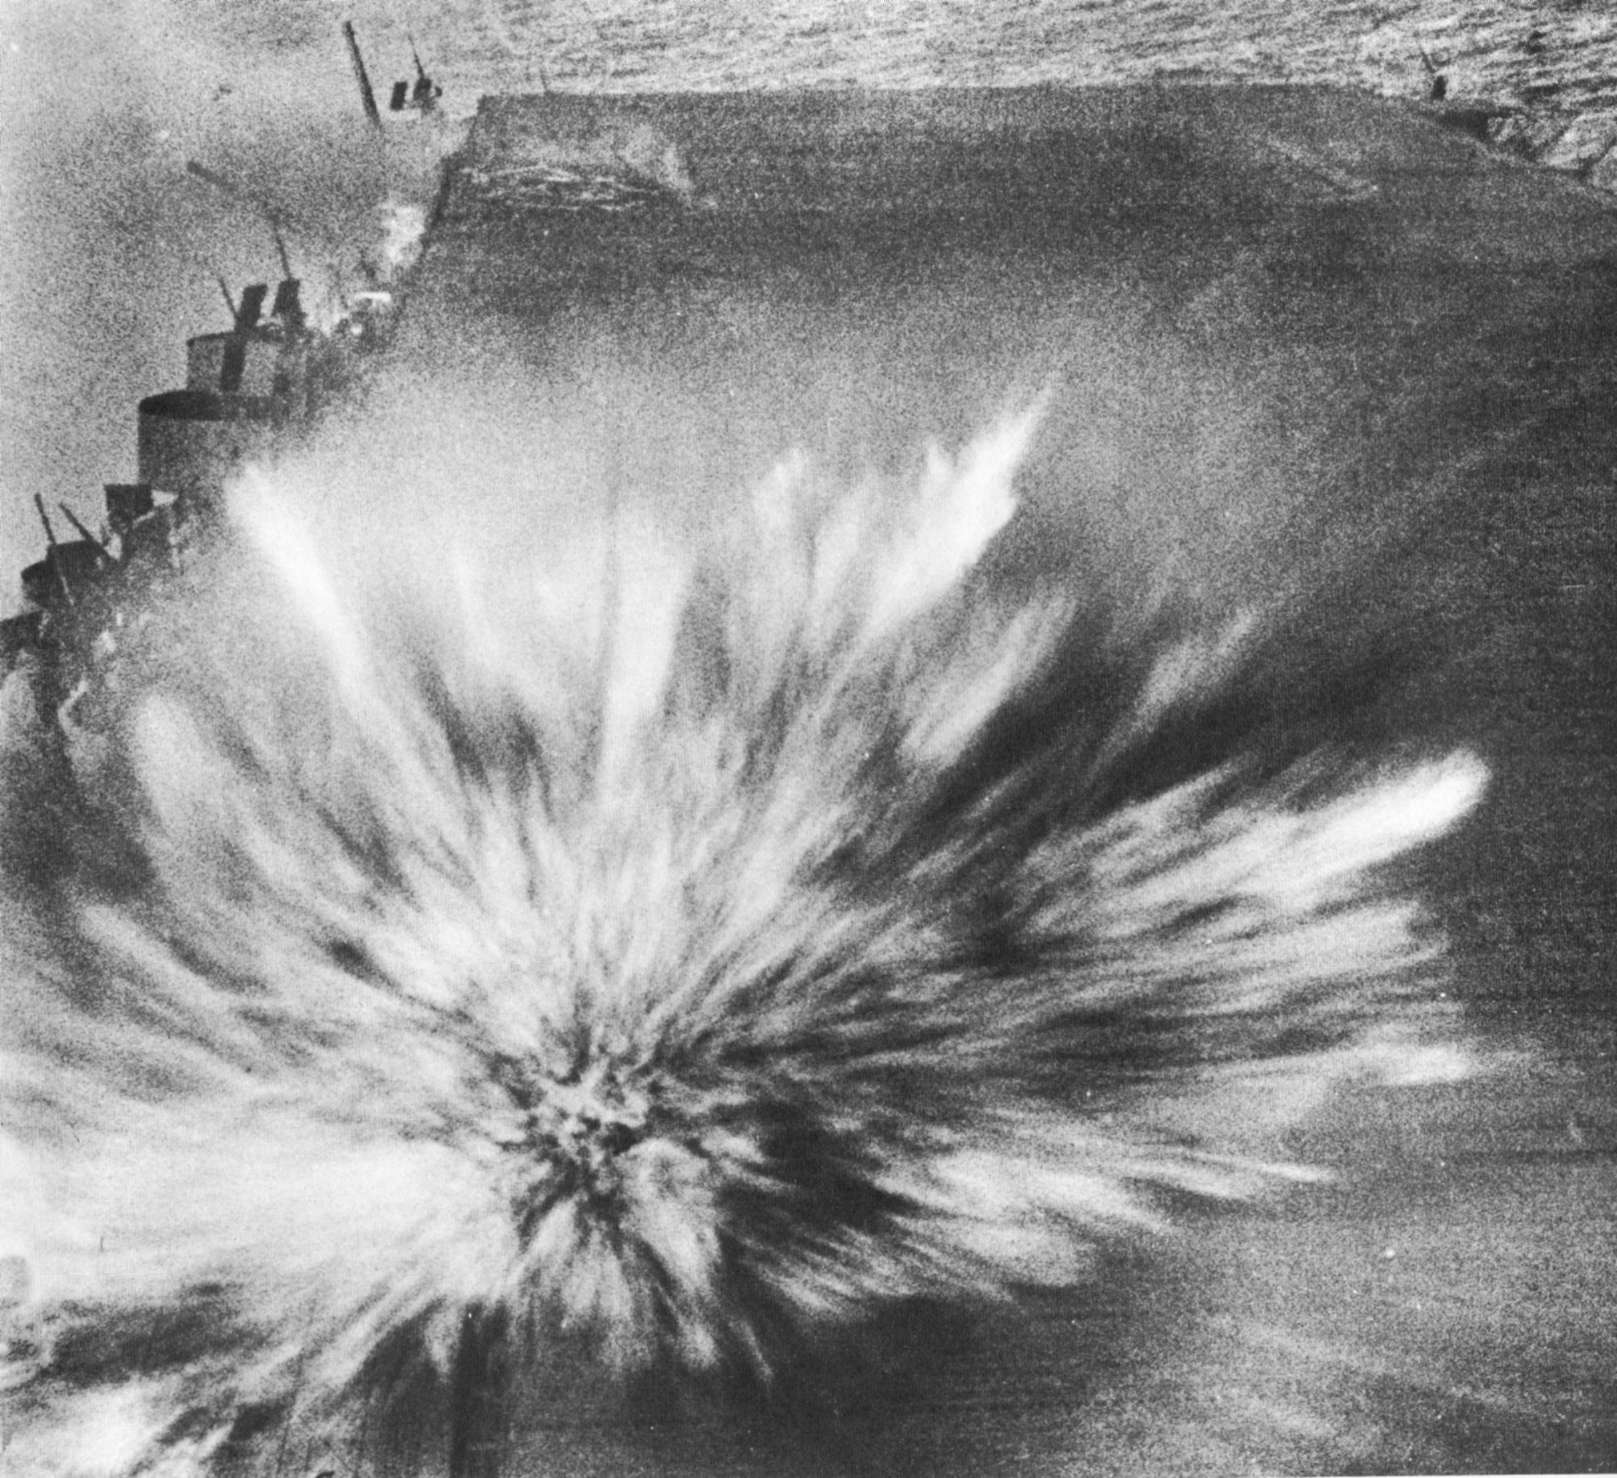 japanese bomb hits deck of uss enterprise, 1942